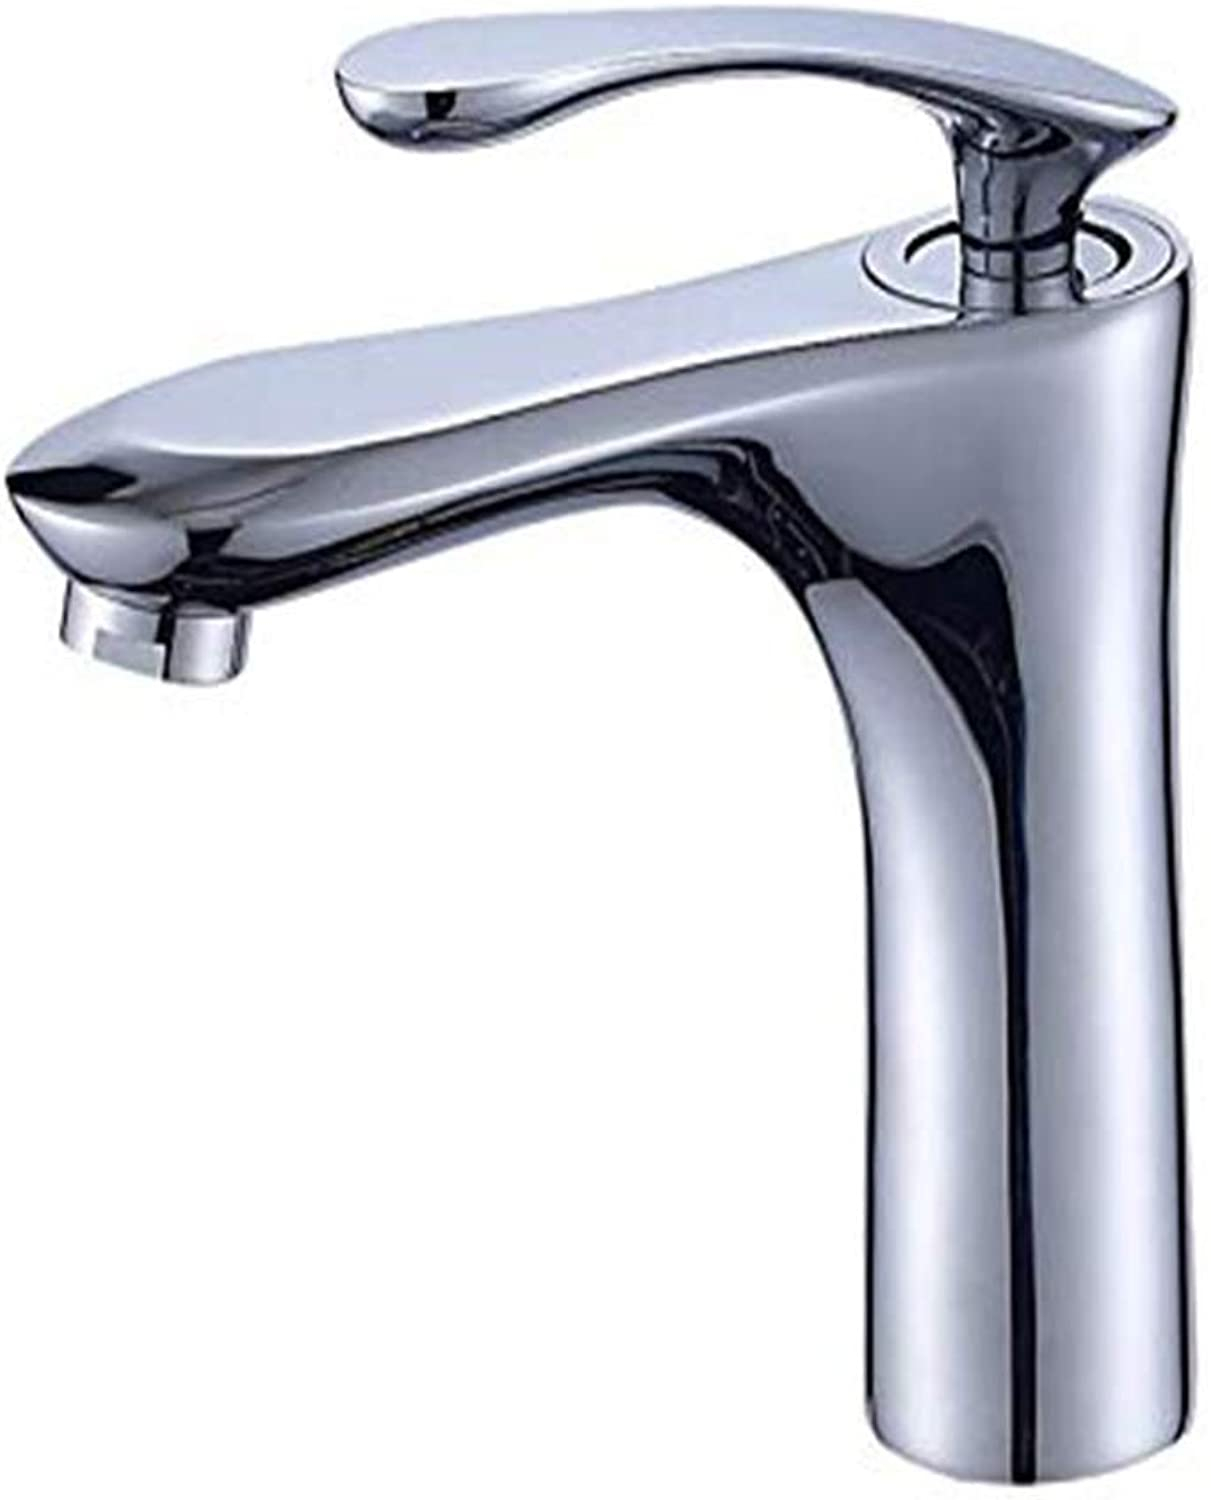 Modern Double Basin Sink Hot and Cold Water Faucettoilet Washbasin Hot and Cold Copper Single Handle Single Hole Faucet